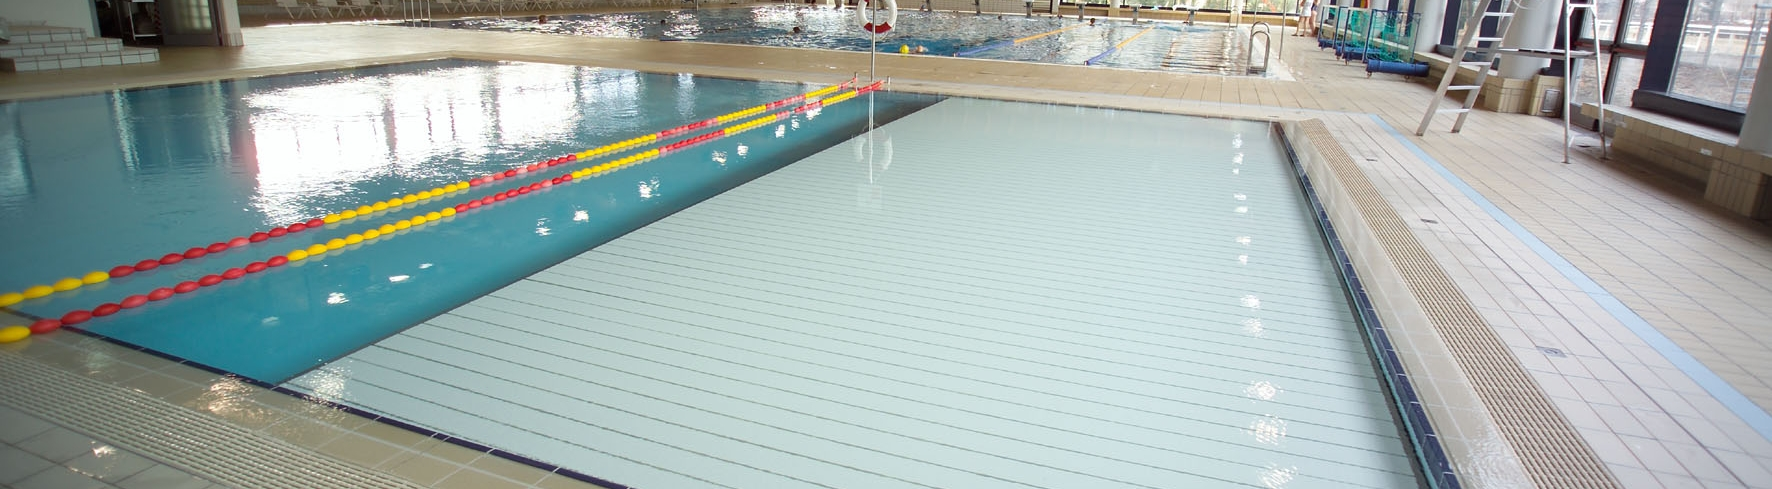 Movable floors commercial aquatics for Movable swimming pool floor australia